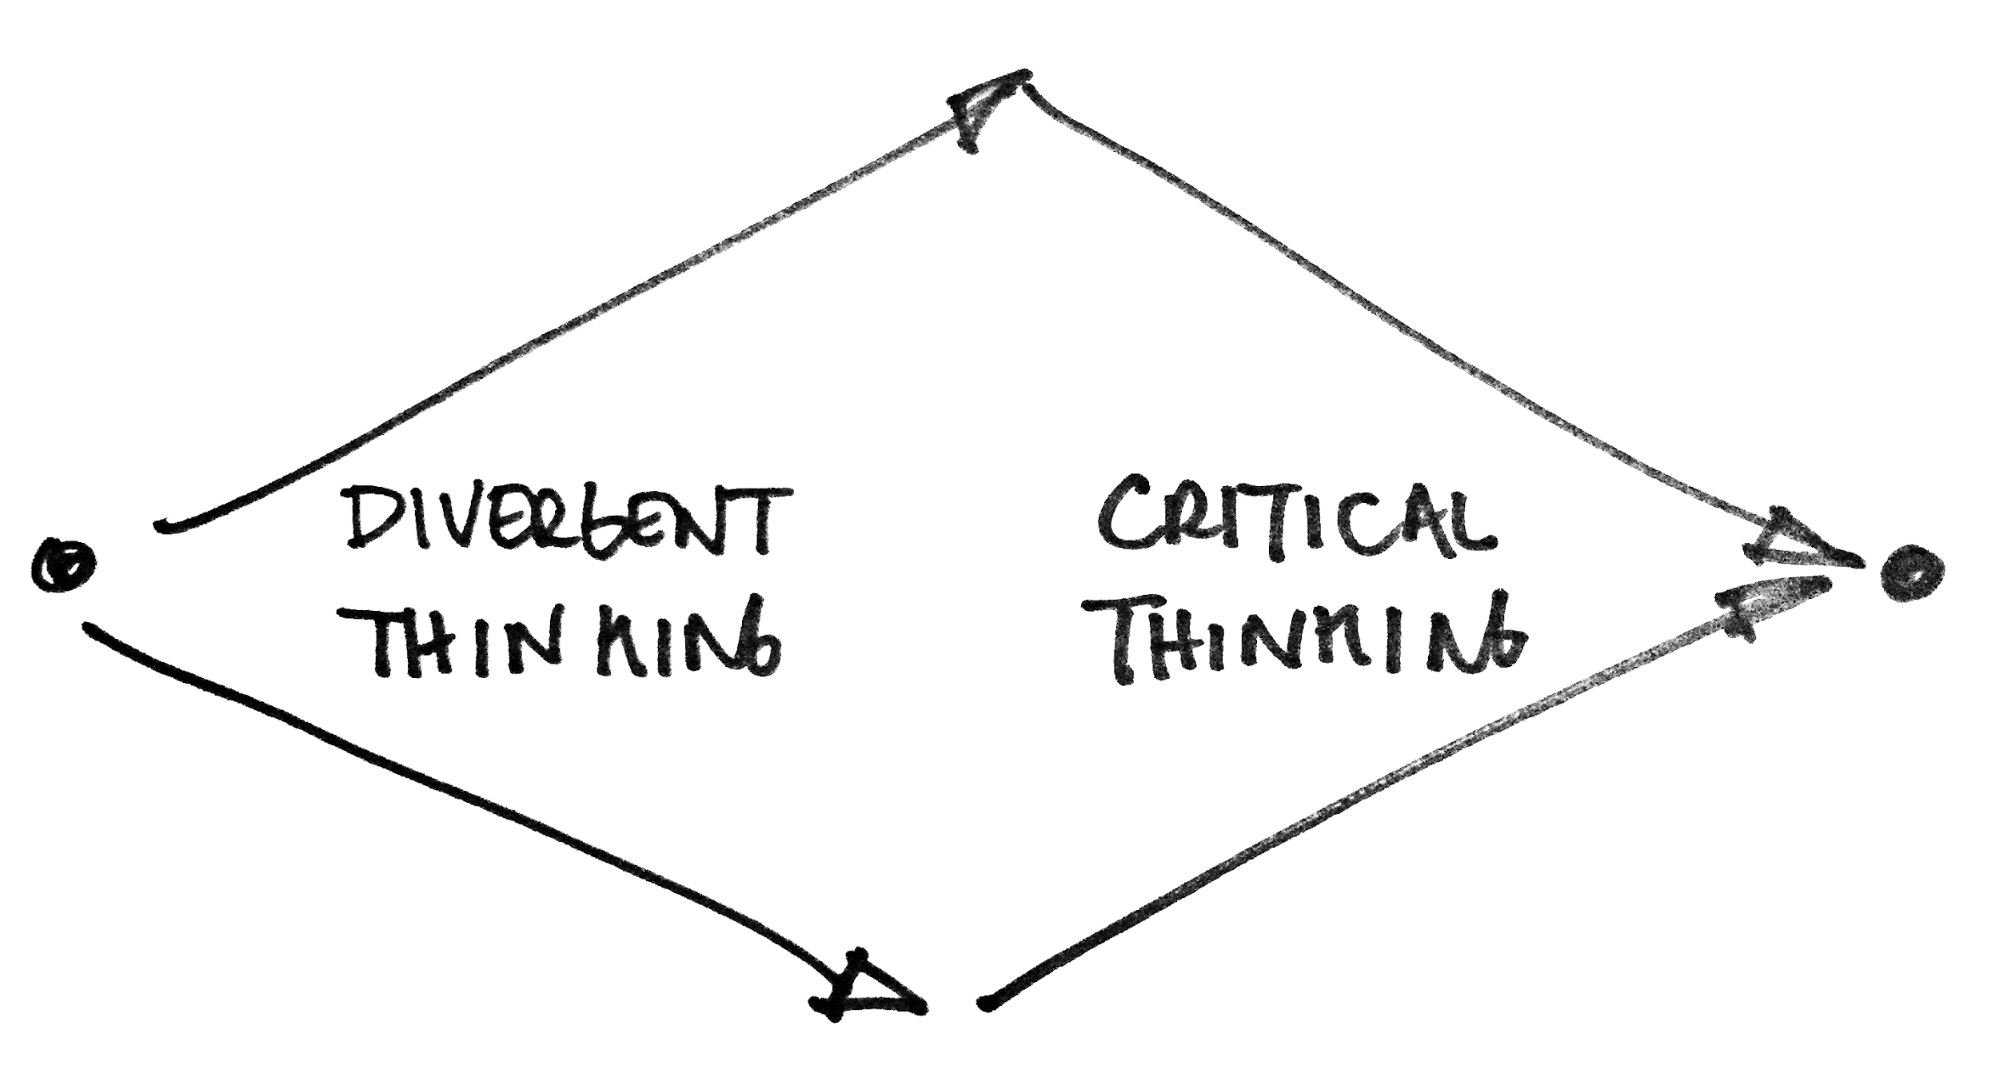 The Relationship Between Divergent and Convergent Thinking